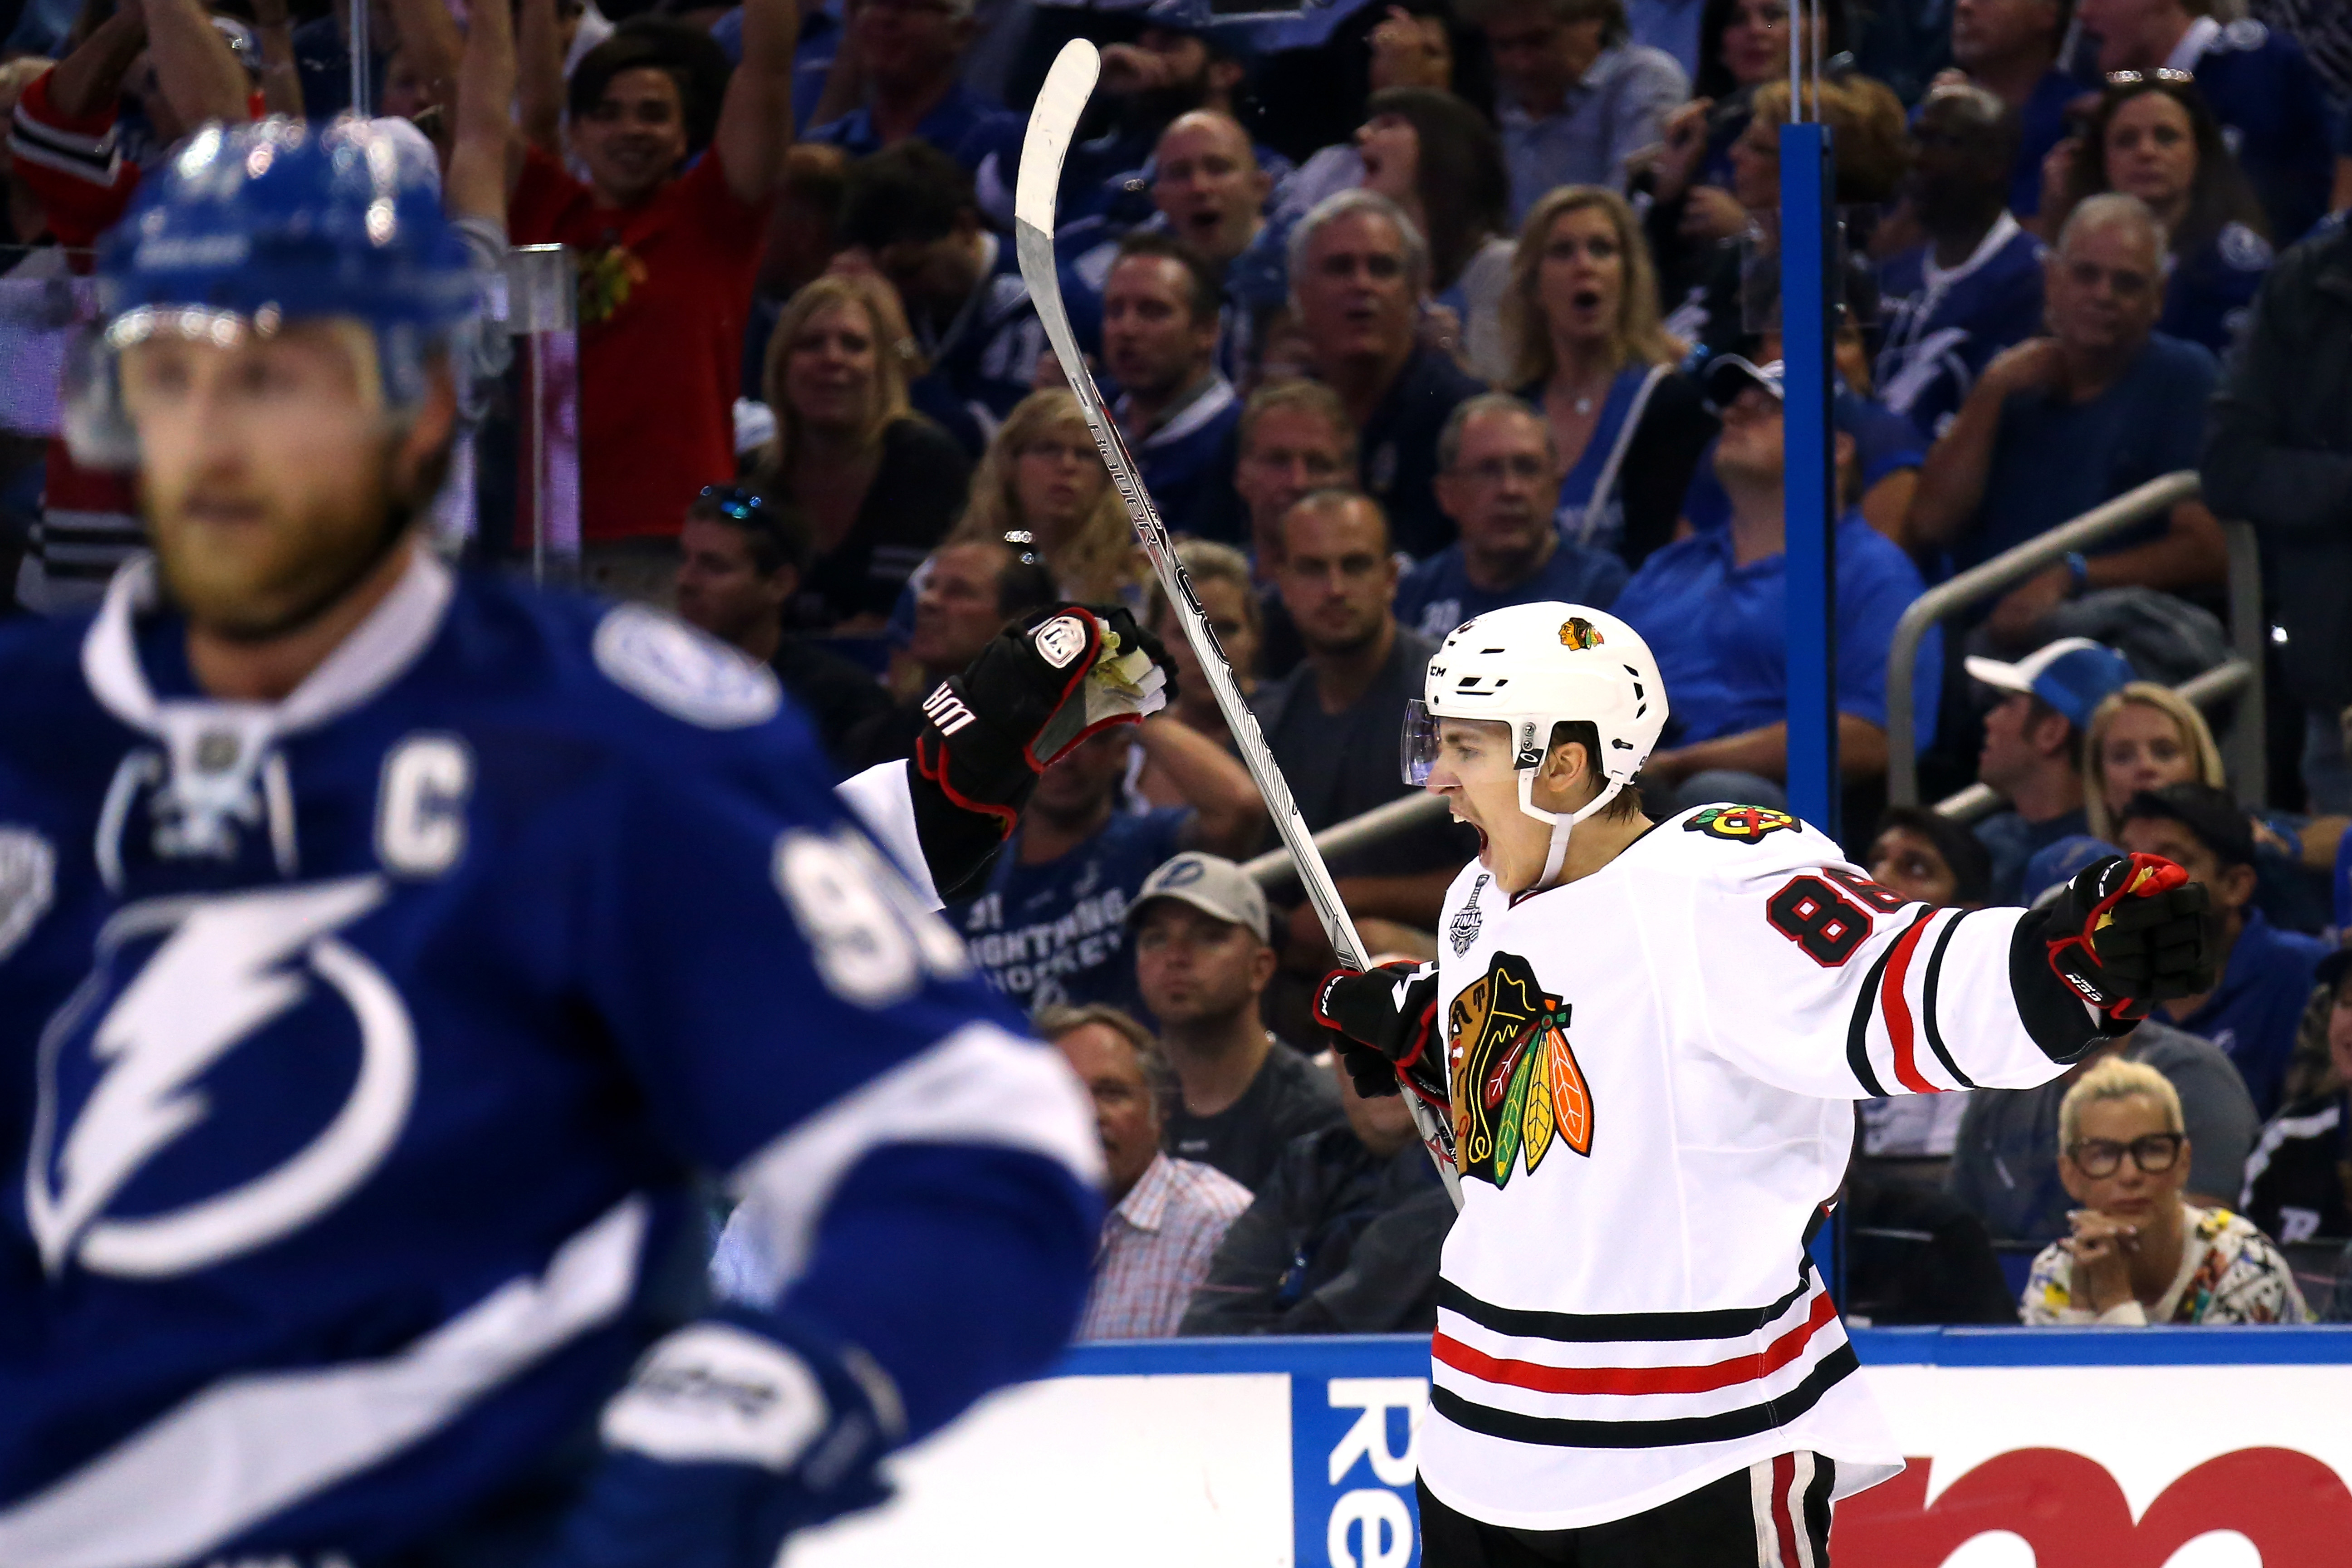 TAMPA, FL - JUNE 03:  Teuvo Teravainen #86 of the Chicago Blackhawks celebrates his third period goal against the Tampa Bay Lightning during Game One of the 2015 NHL Stanley Cup Final at Amalie Arena on June 3, 2015 in Tampa, Florida.  (Photo by Bruce Bennett/Getty Images)